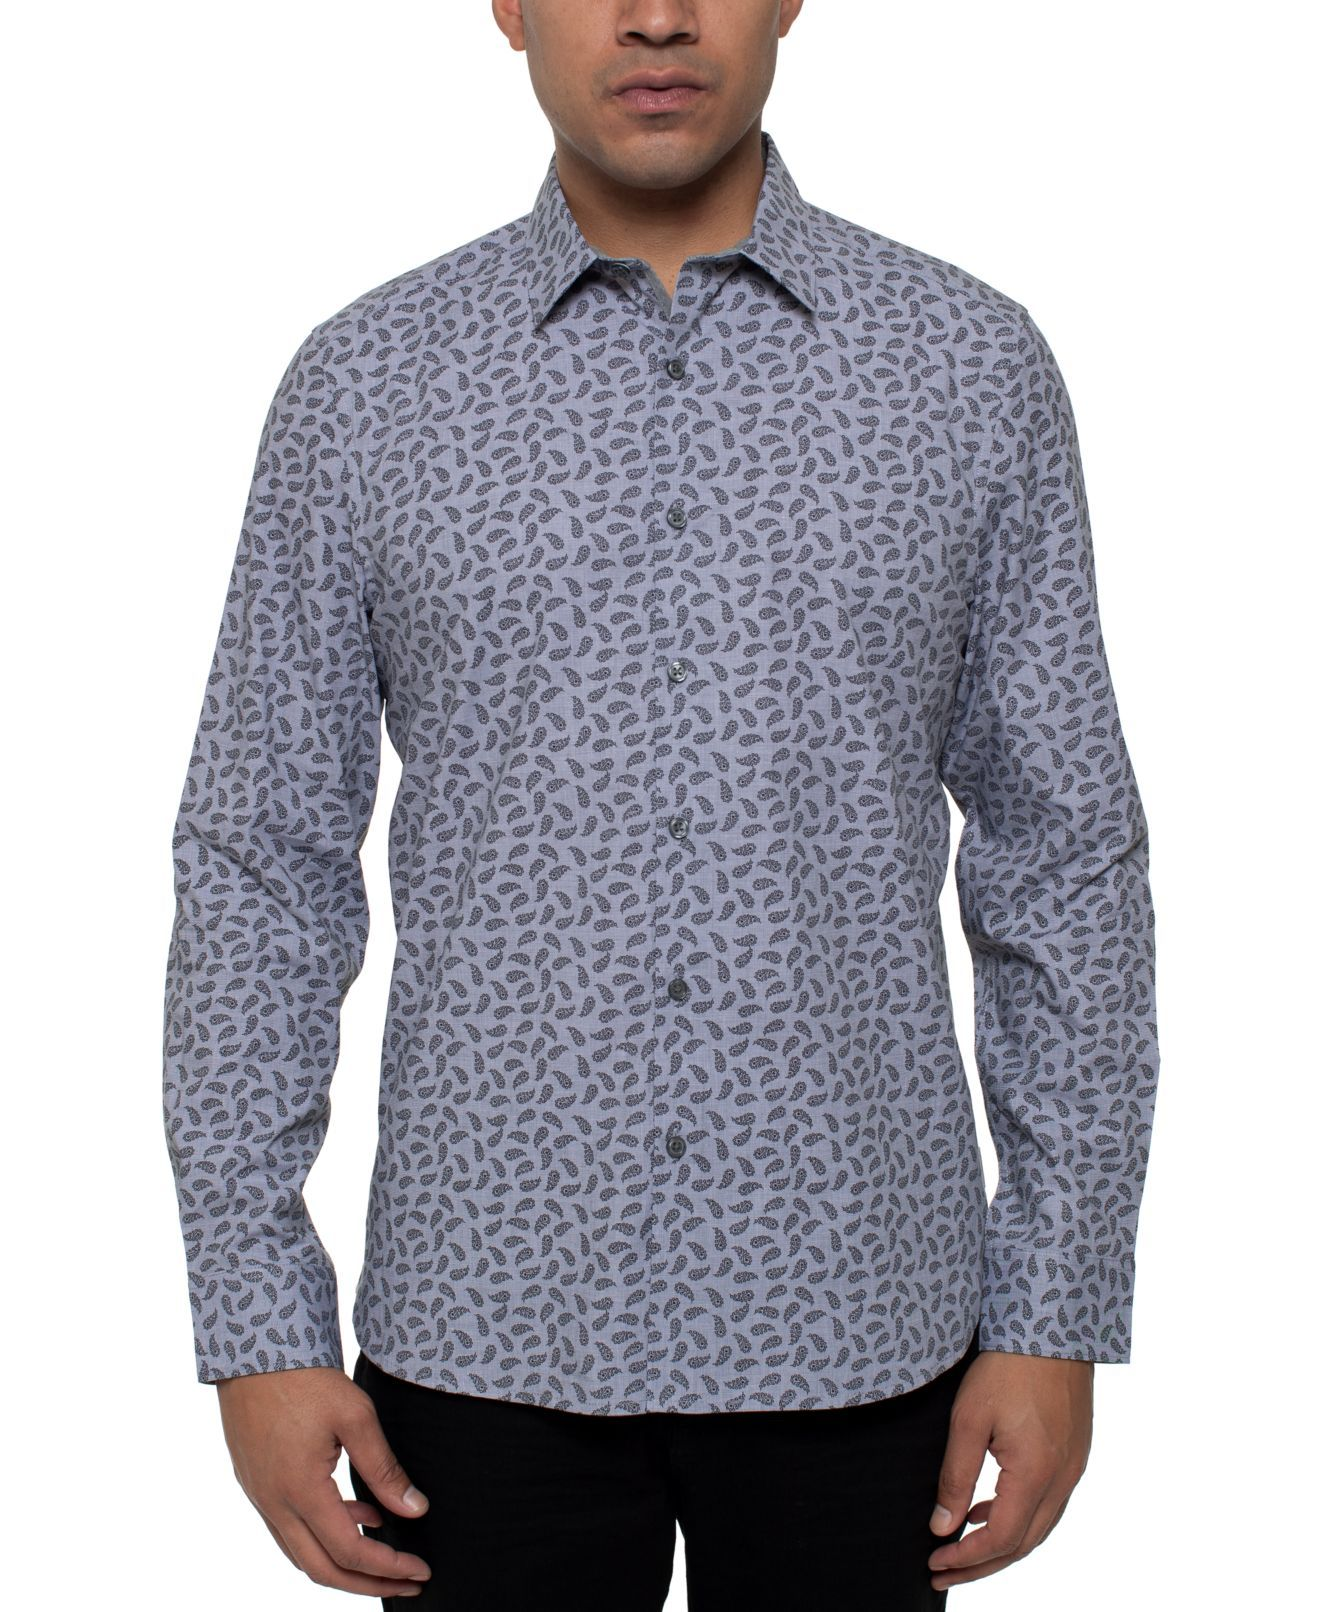 Kenneth Cole Mens Shirt Gray Size XL Performance Paisley Button Down